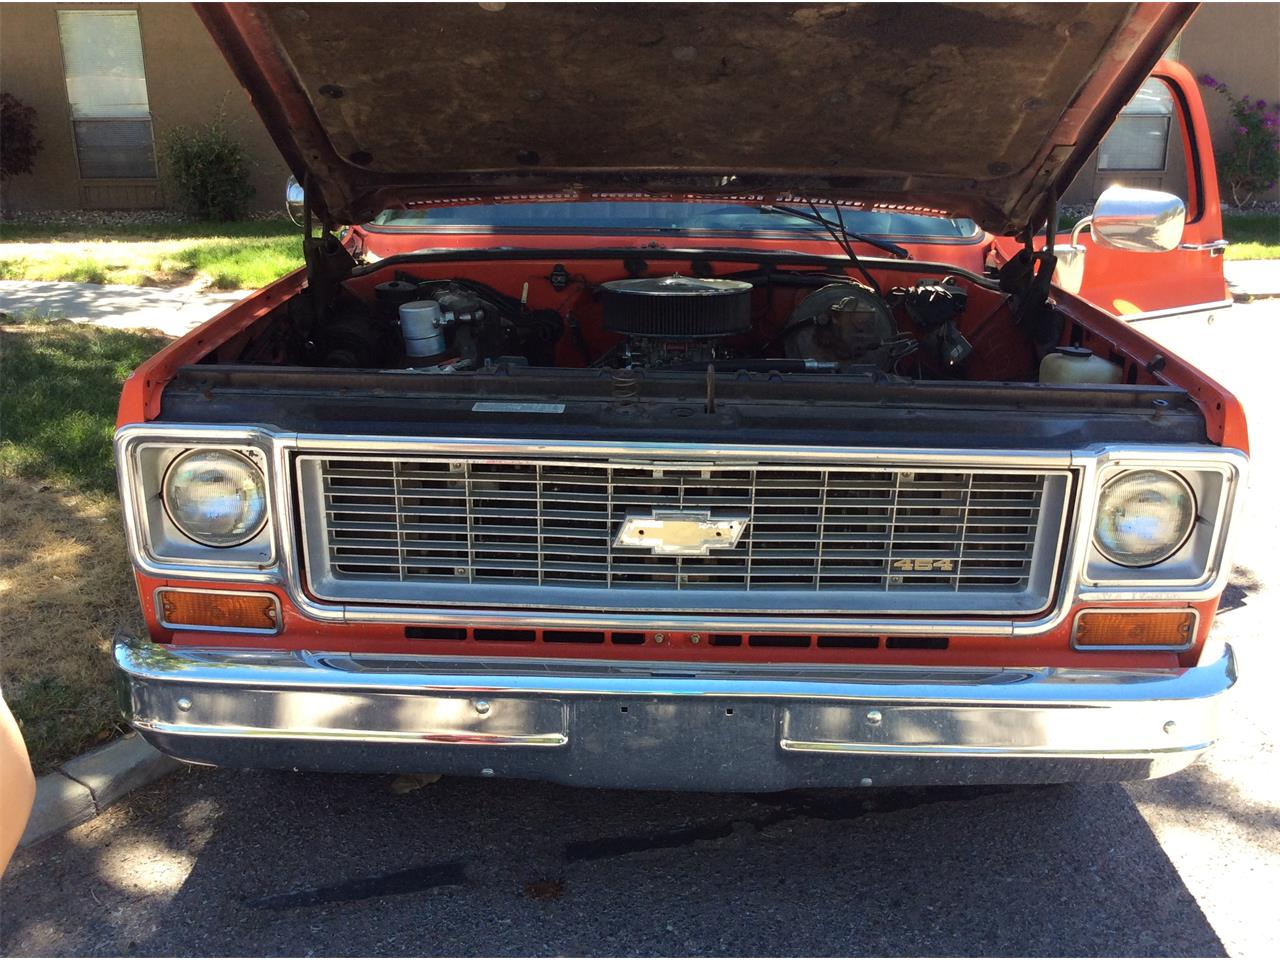 Large Picture of '74 Chevrolet Cheyenne Offered by a Private Seller - LMK8